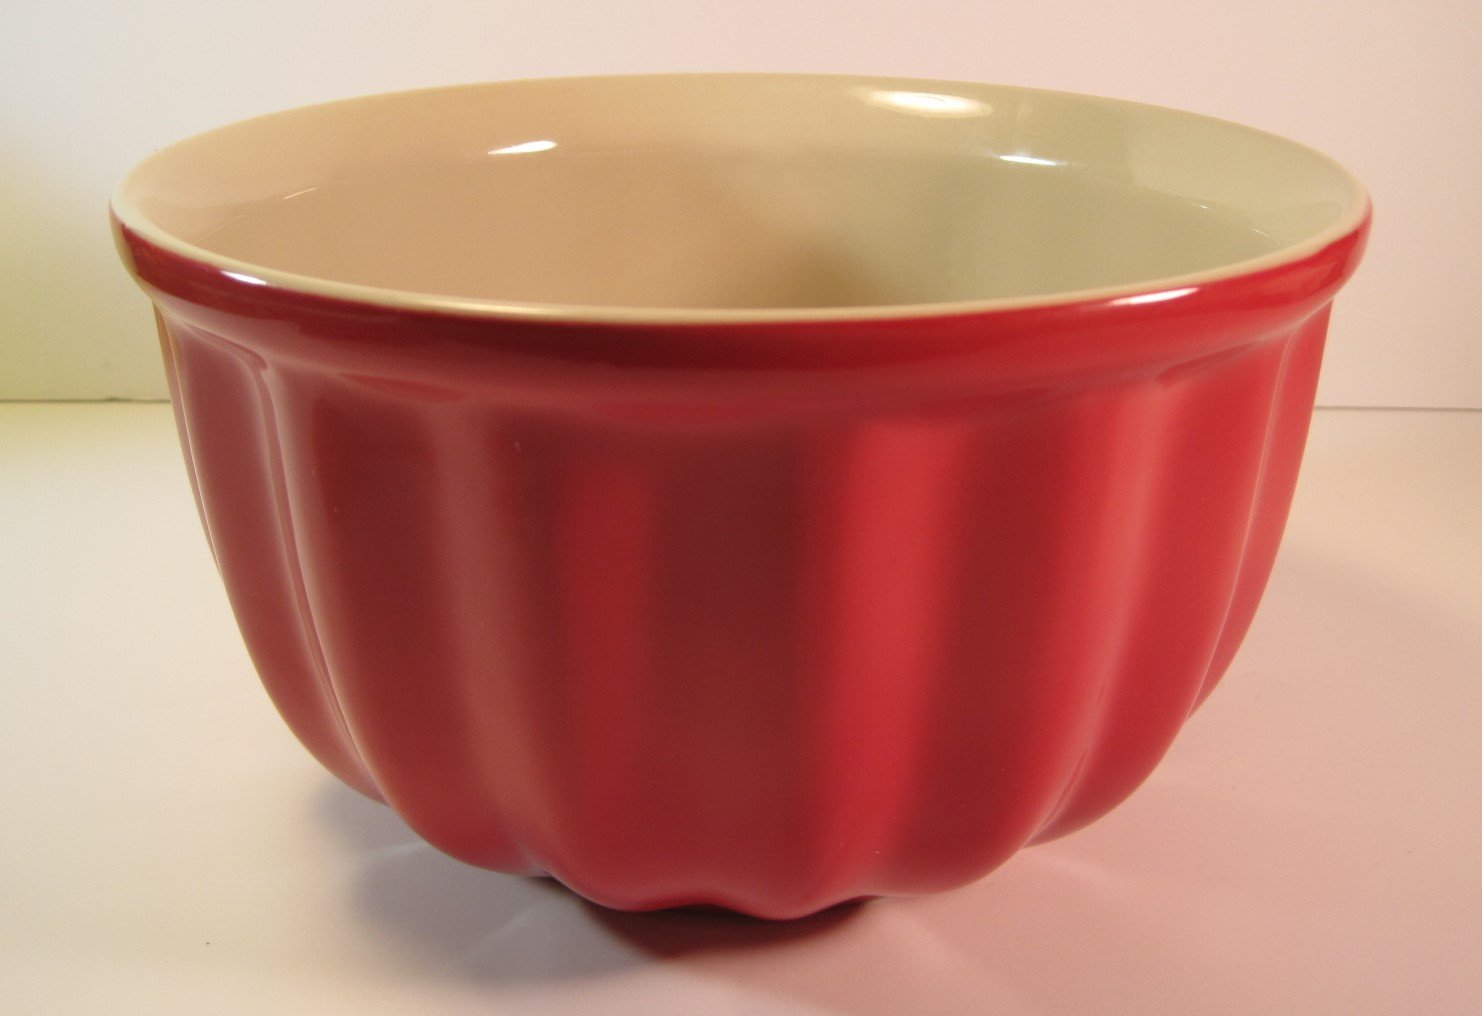 Good Cook, Oven Fresh Stoneware 3 Quart Bowl, Oven to Table